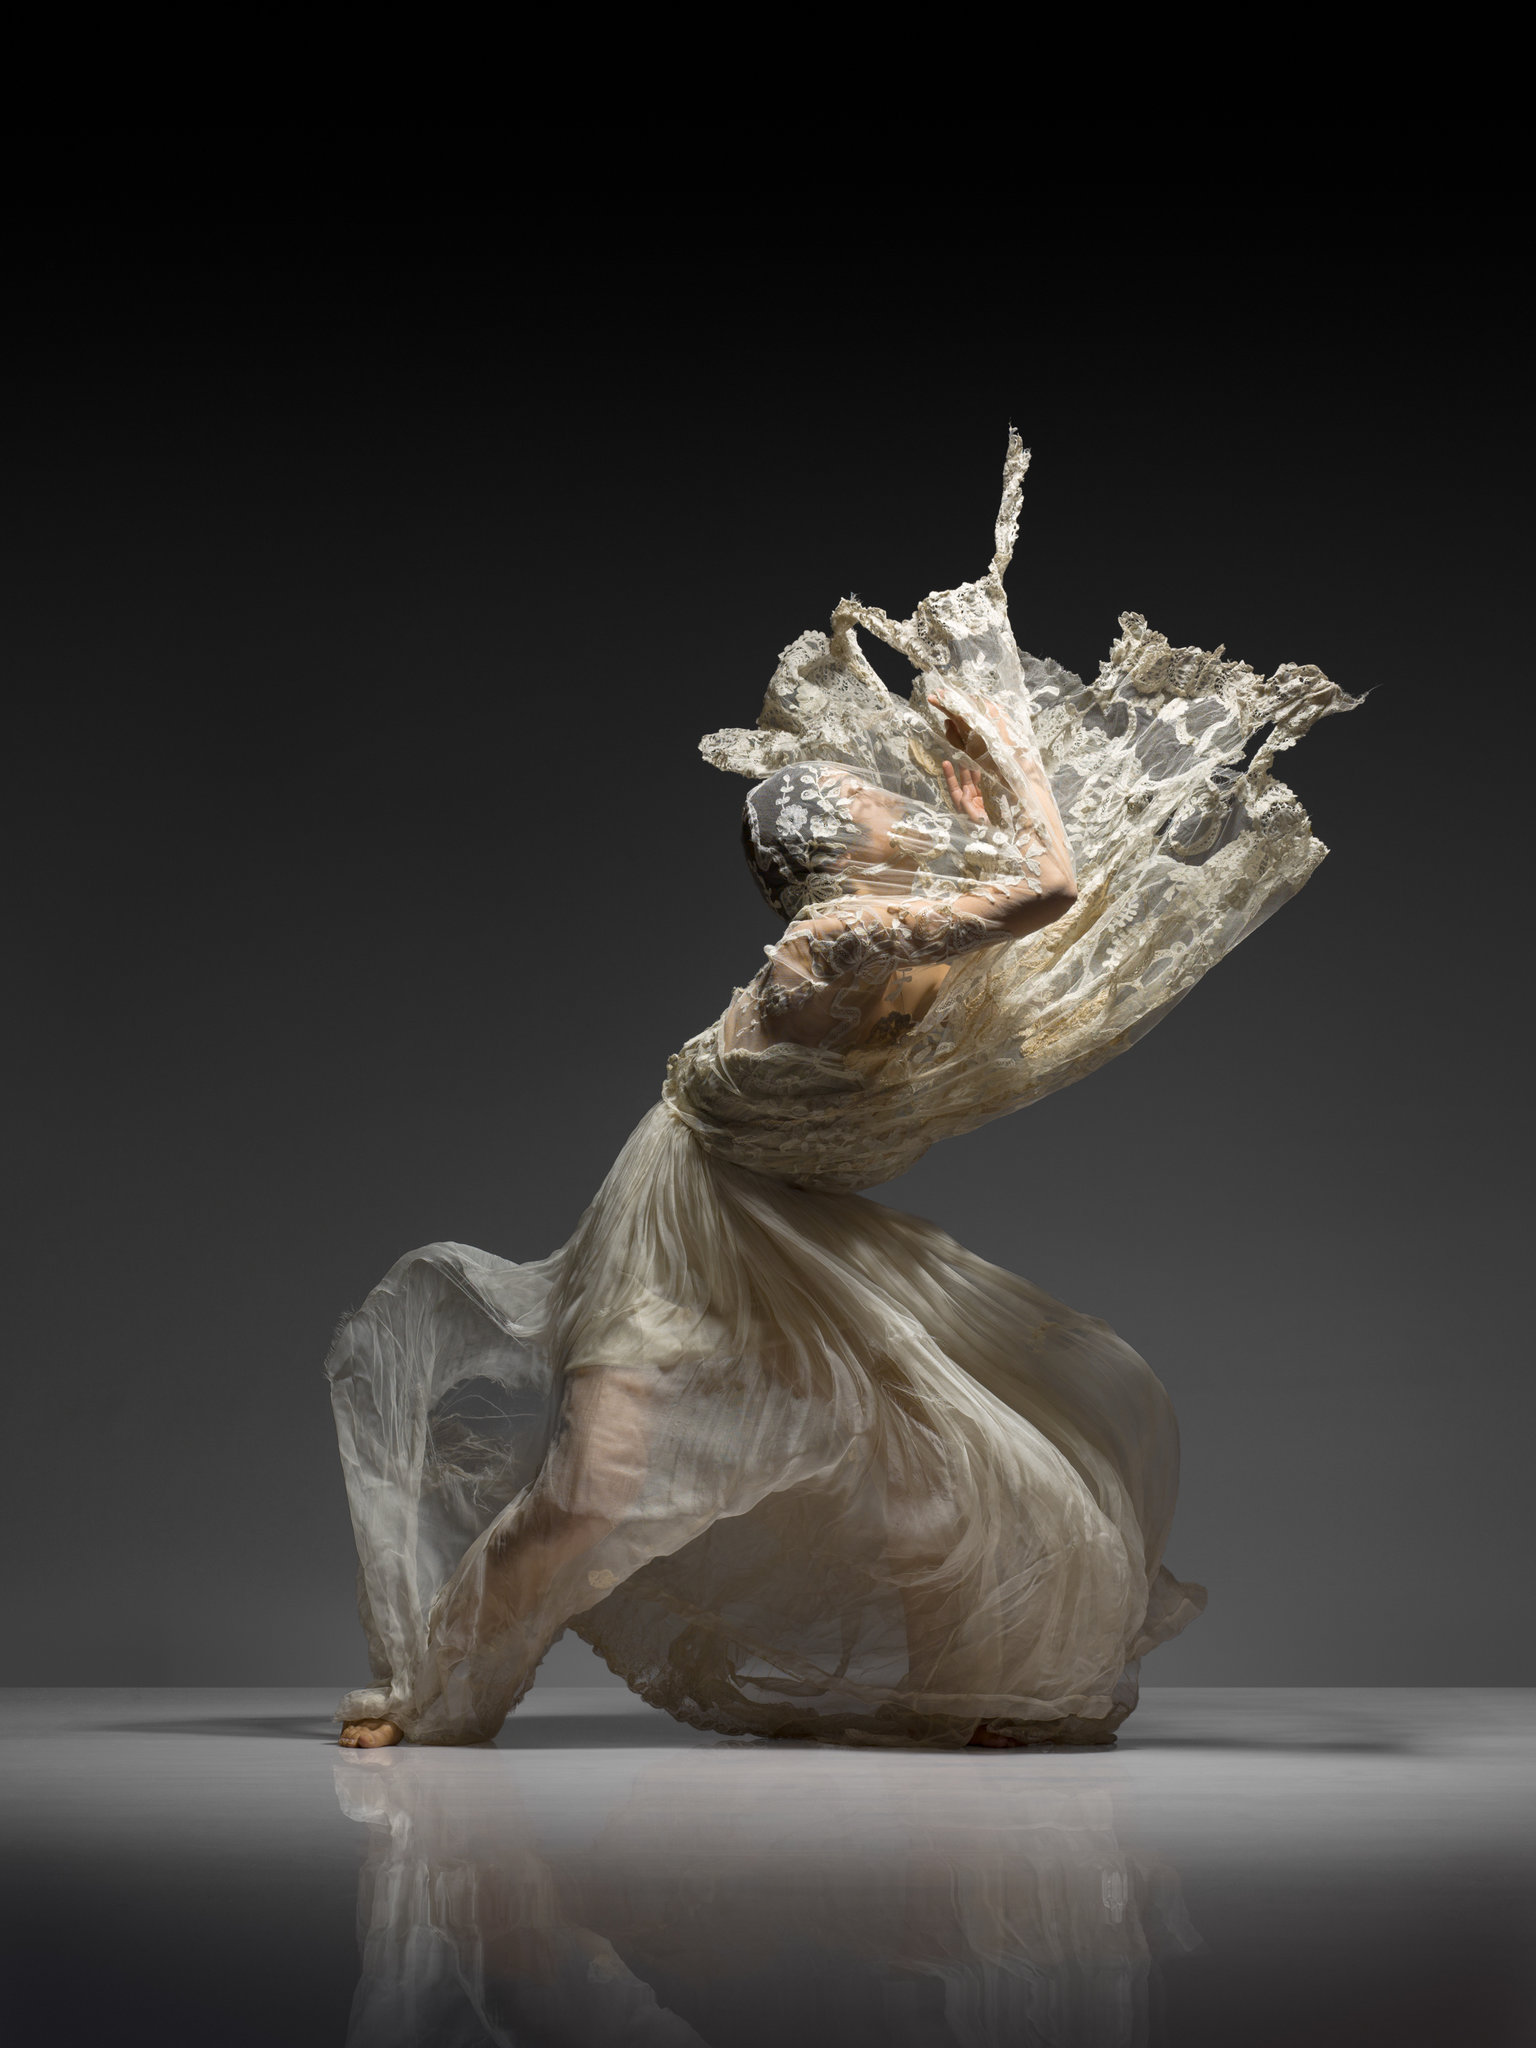 grainedephotographe-loisgreenfield7